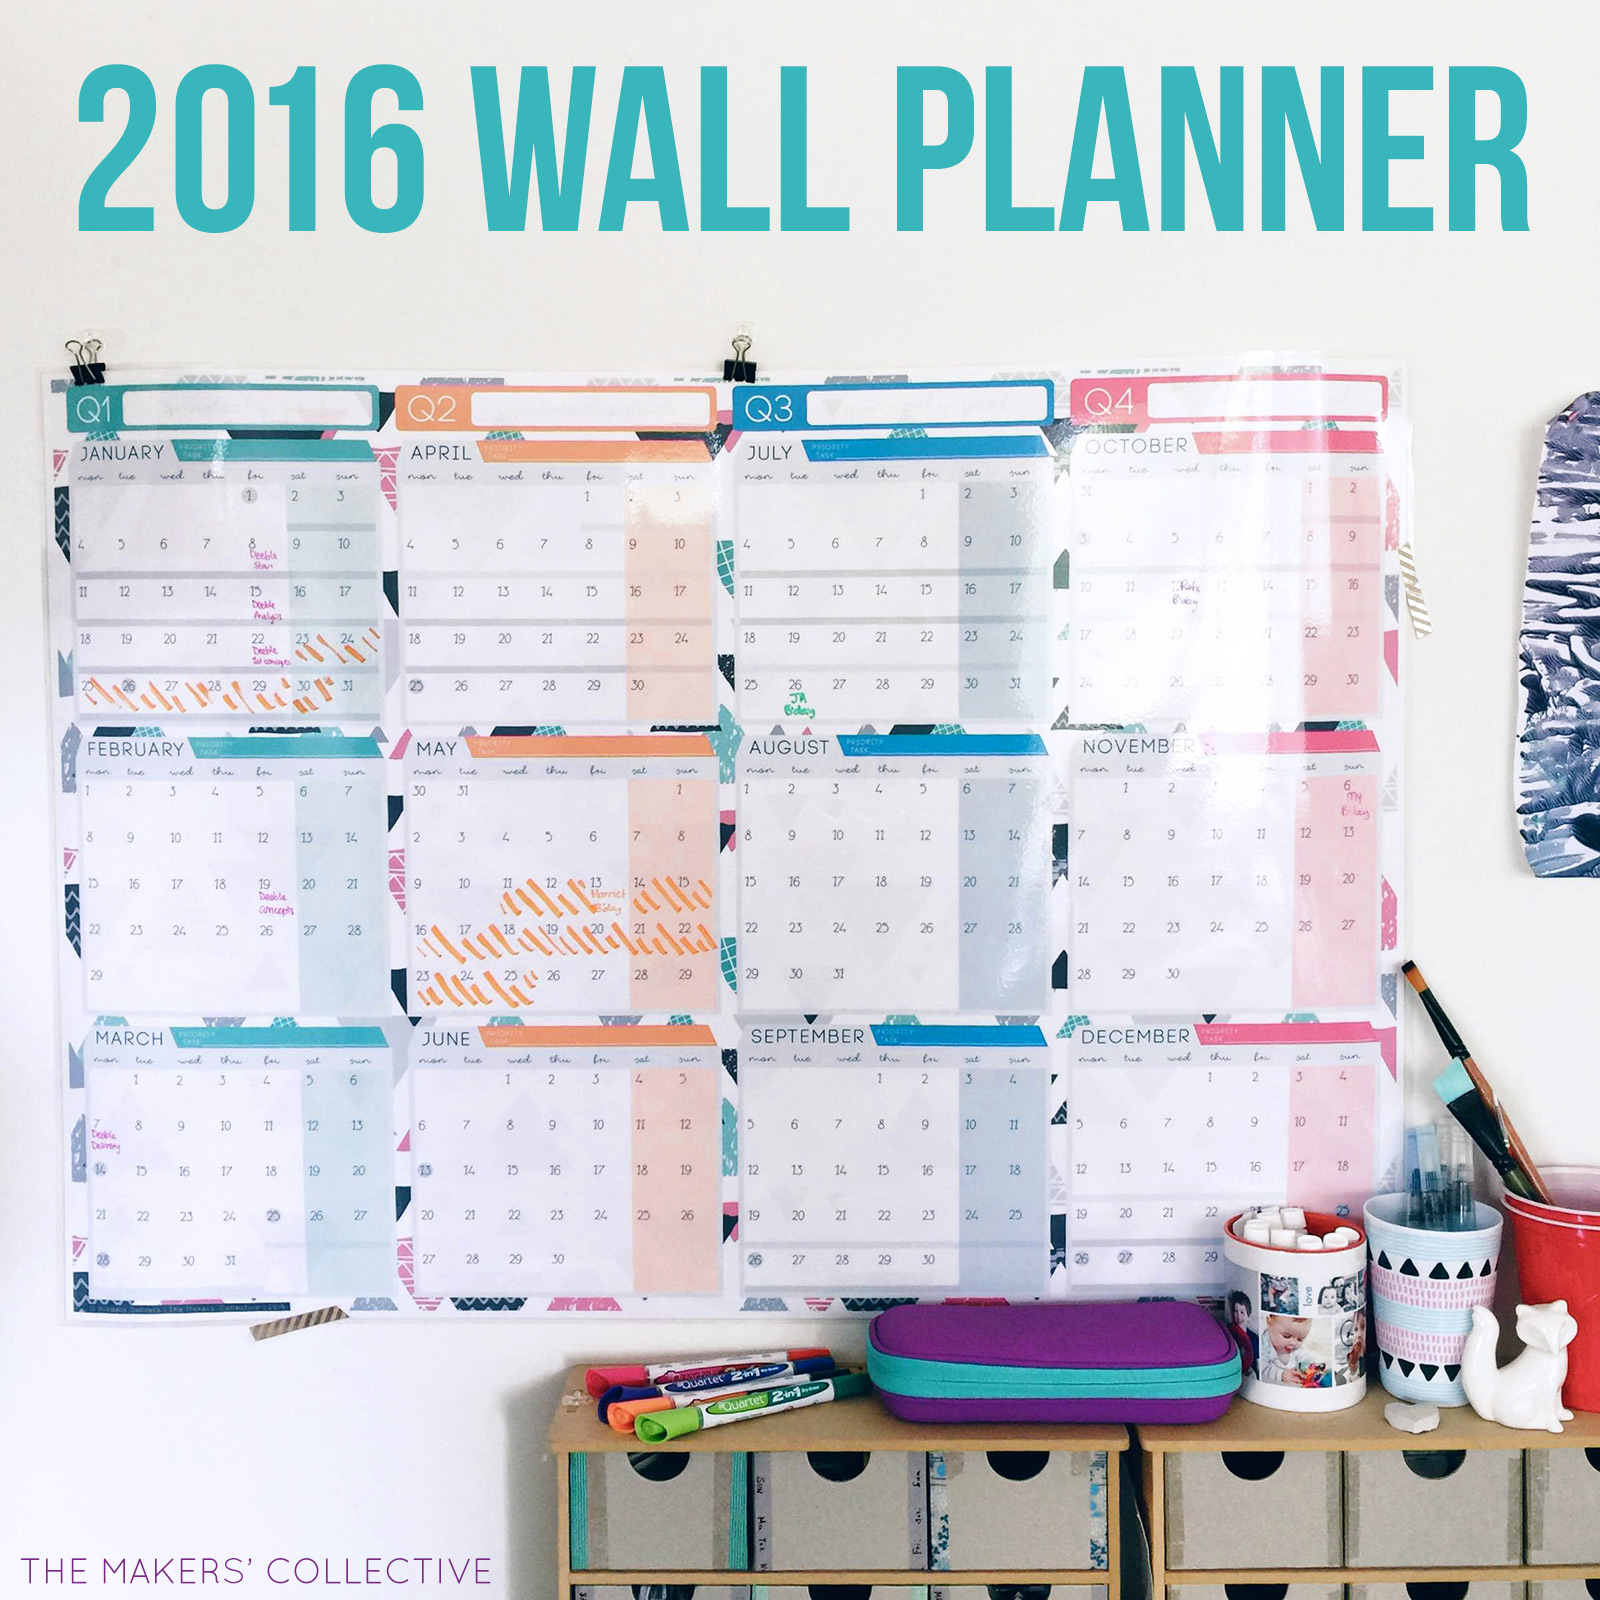 Year Calendar Officeworks : The wall planner design has landed makers